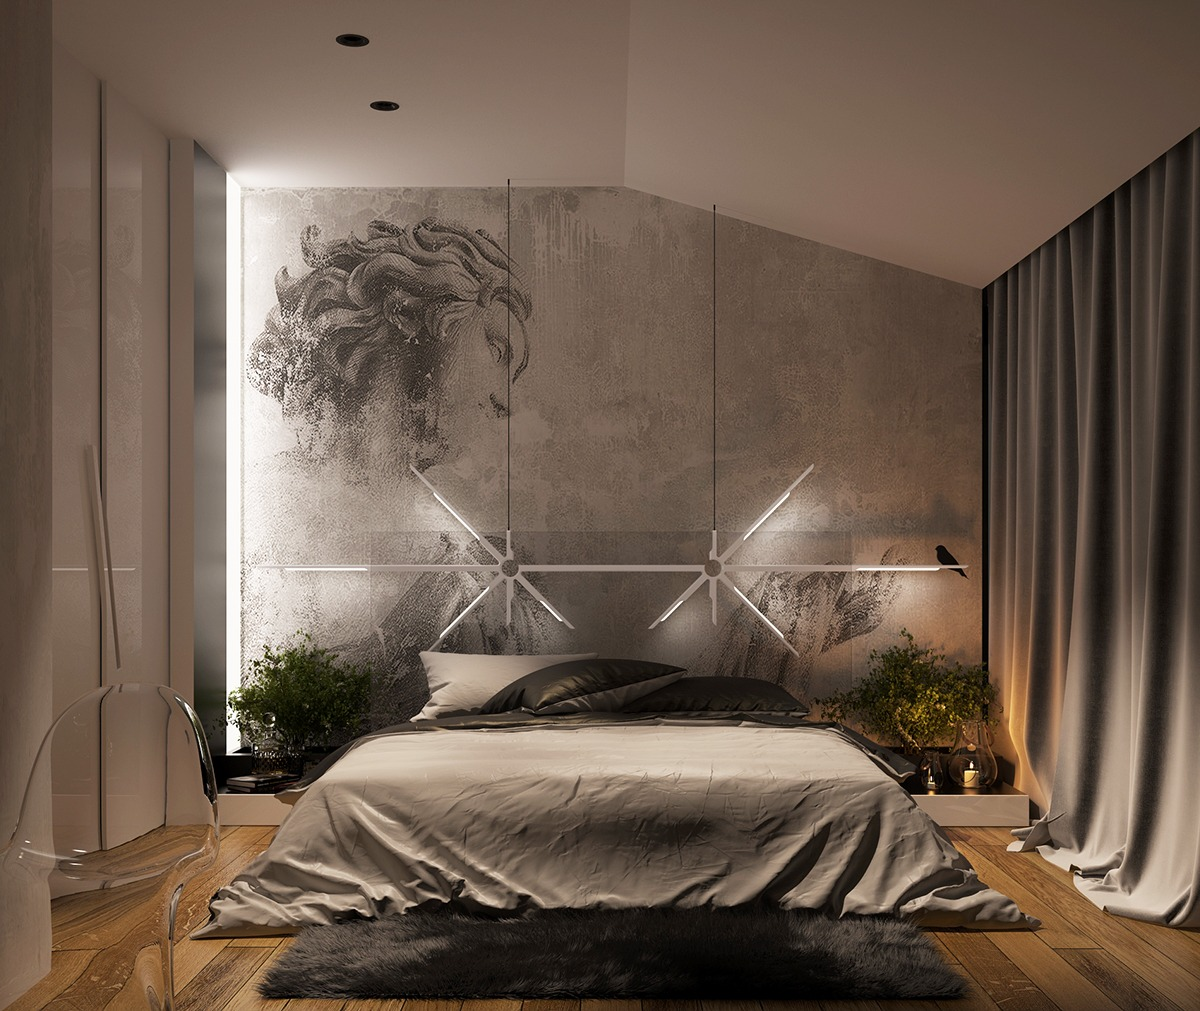 Lighting In Interior Design Creative: Concrete Wall Designs: 30 Striking Bedrooms That Use